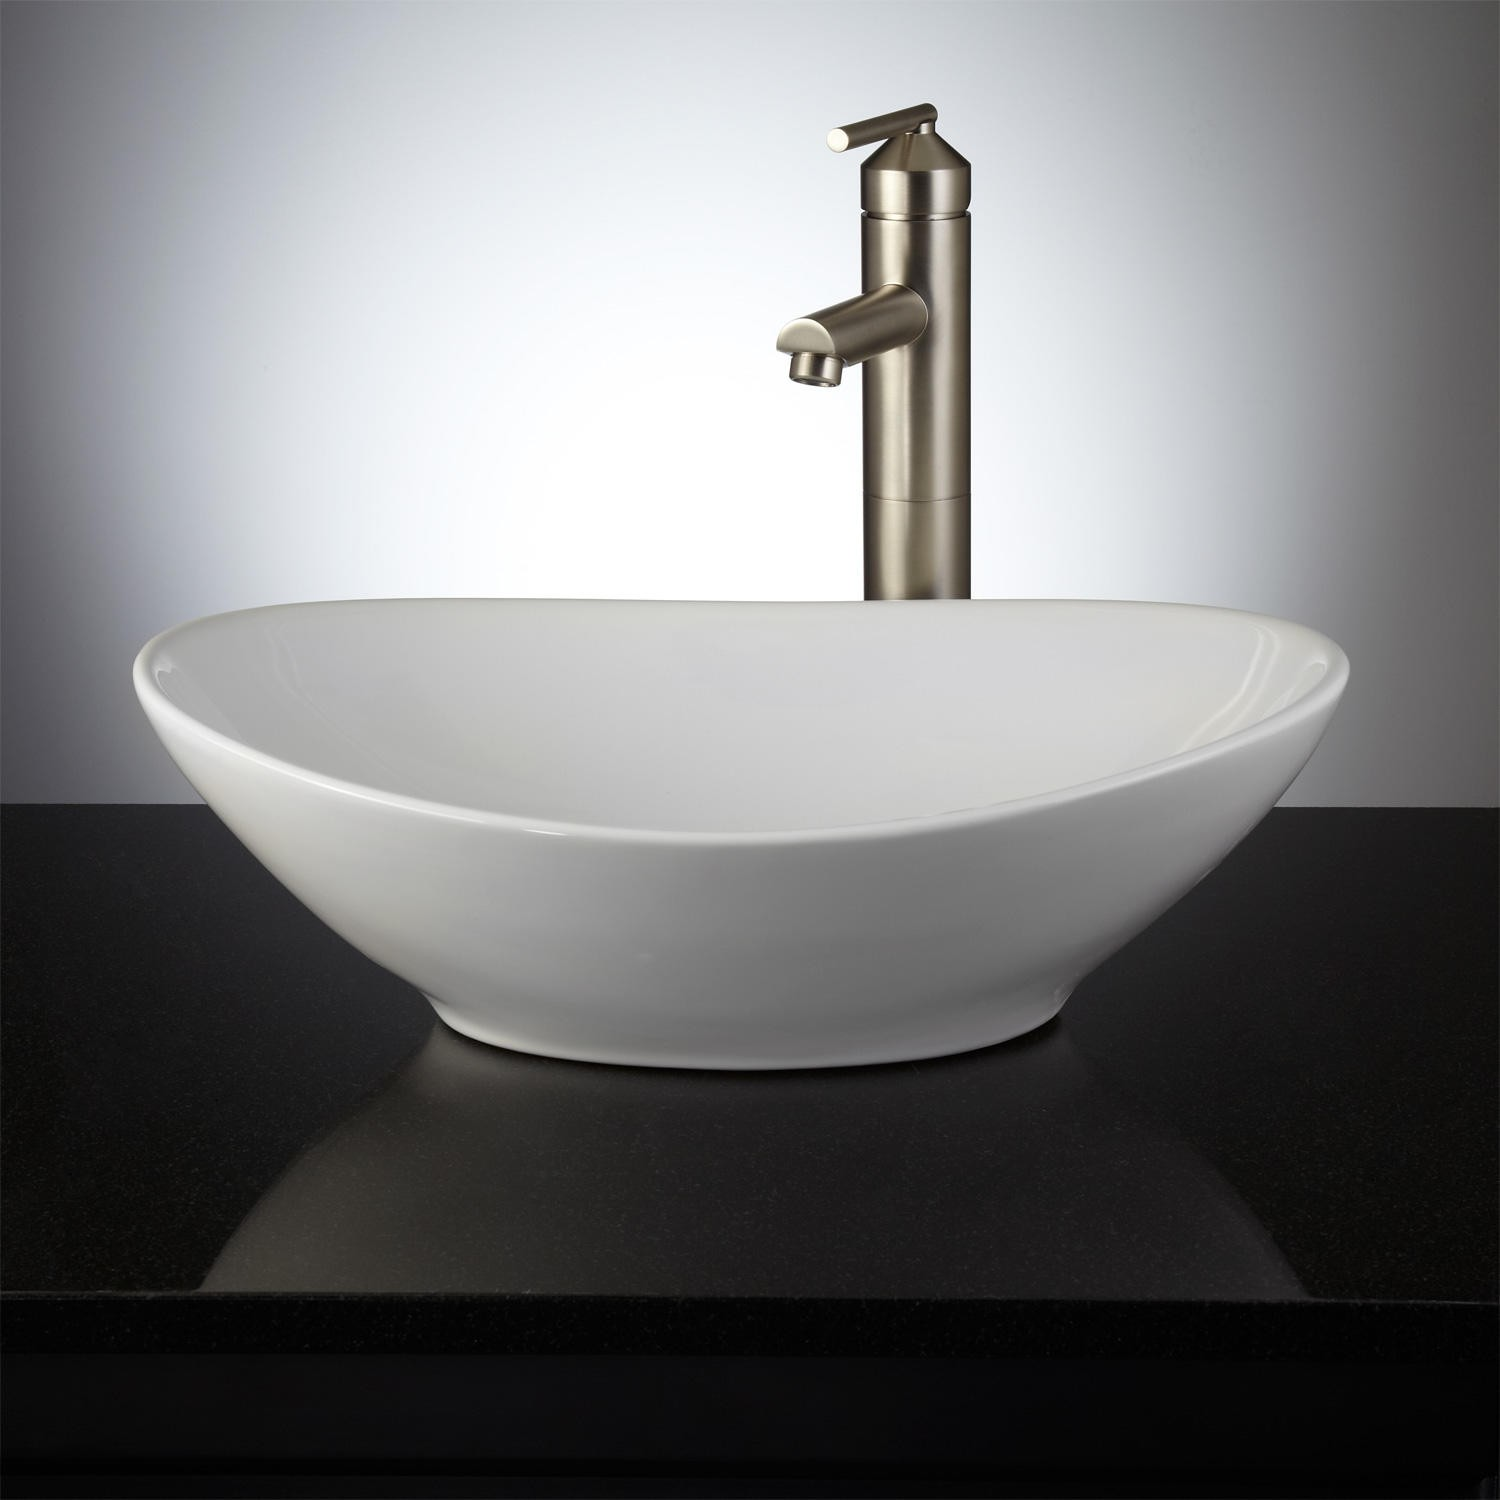 Ideas for Modern Bathroom Sinks